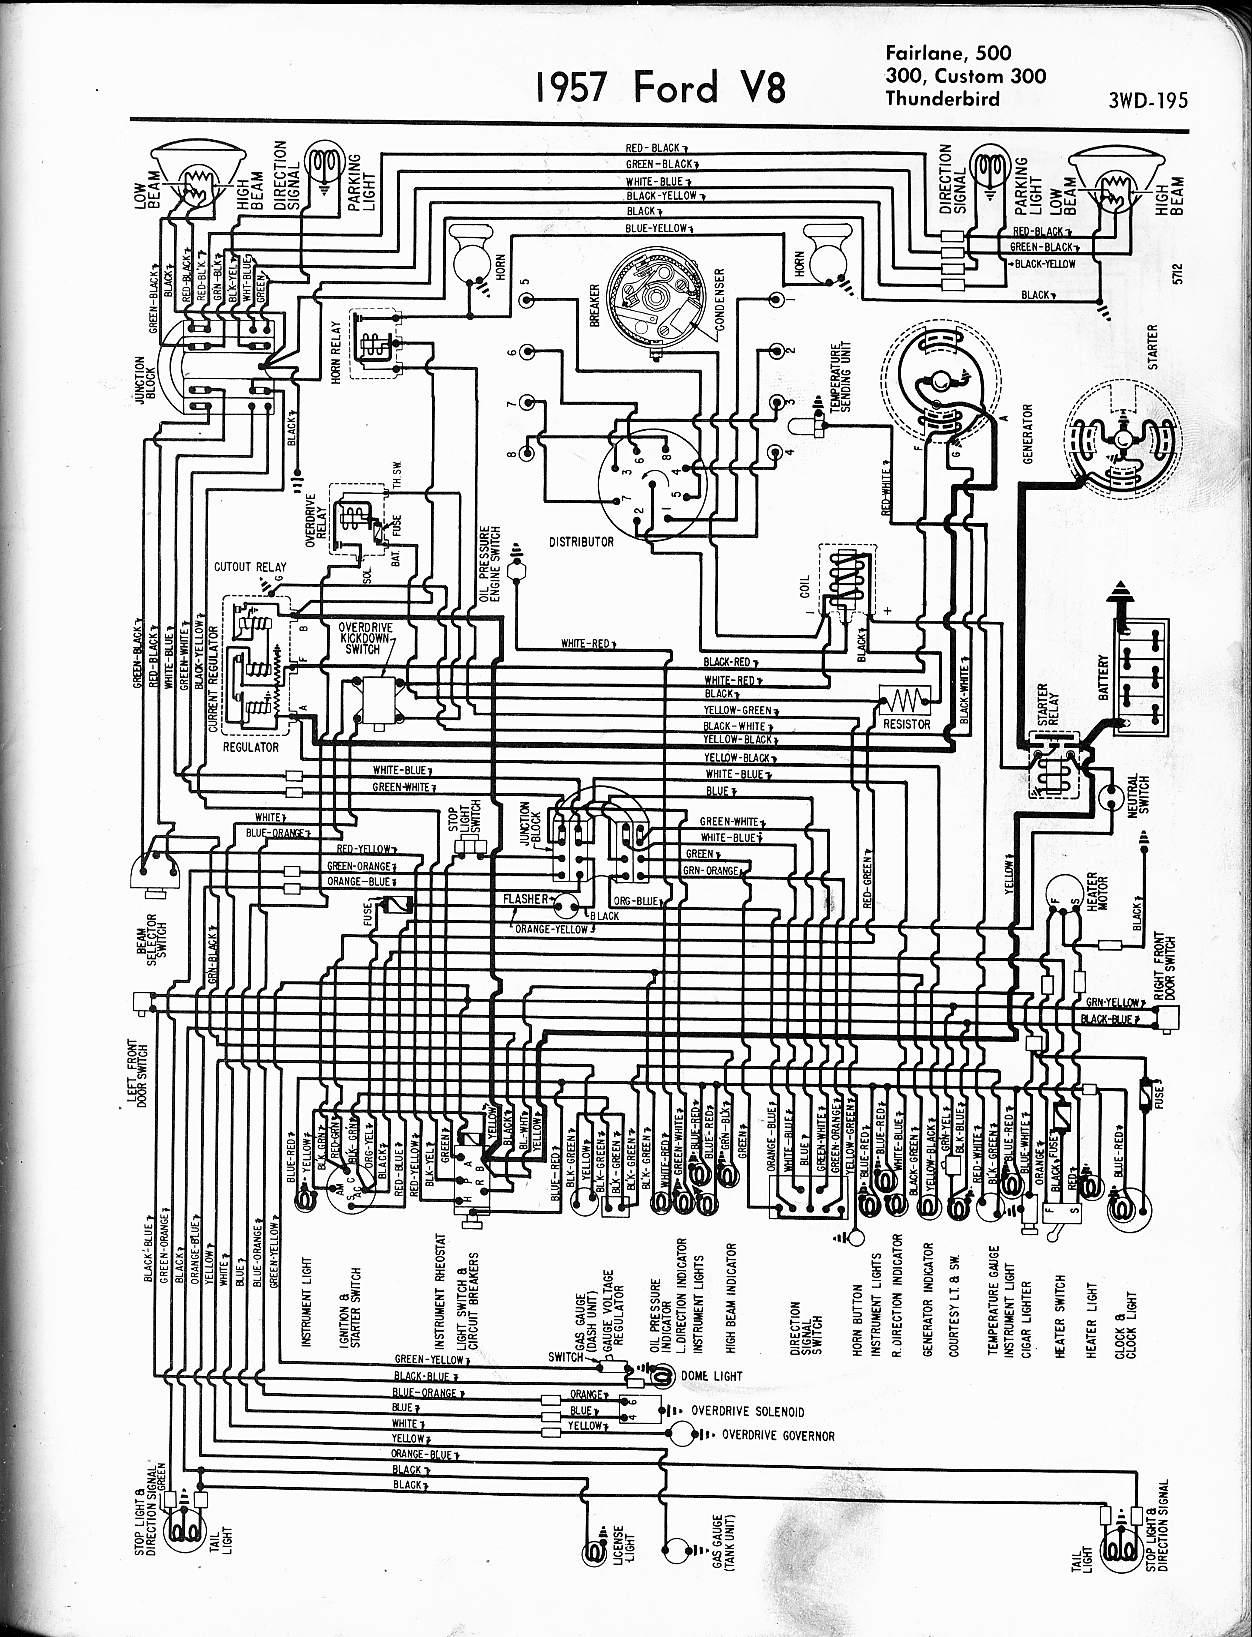 MWire5765 195 runtz voltage reducer i change my 55 t birt to a 12 volt system 57 Chevy Wiring Diagram at soozxer.org